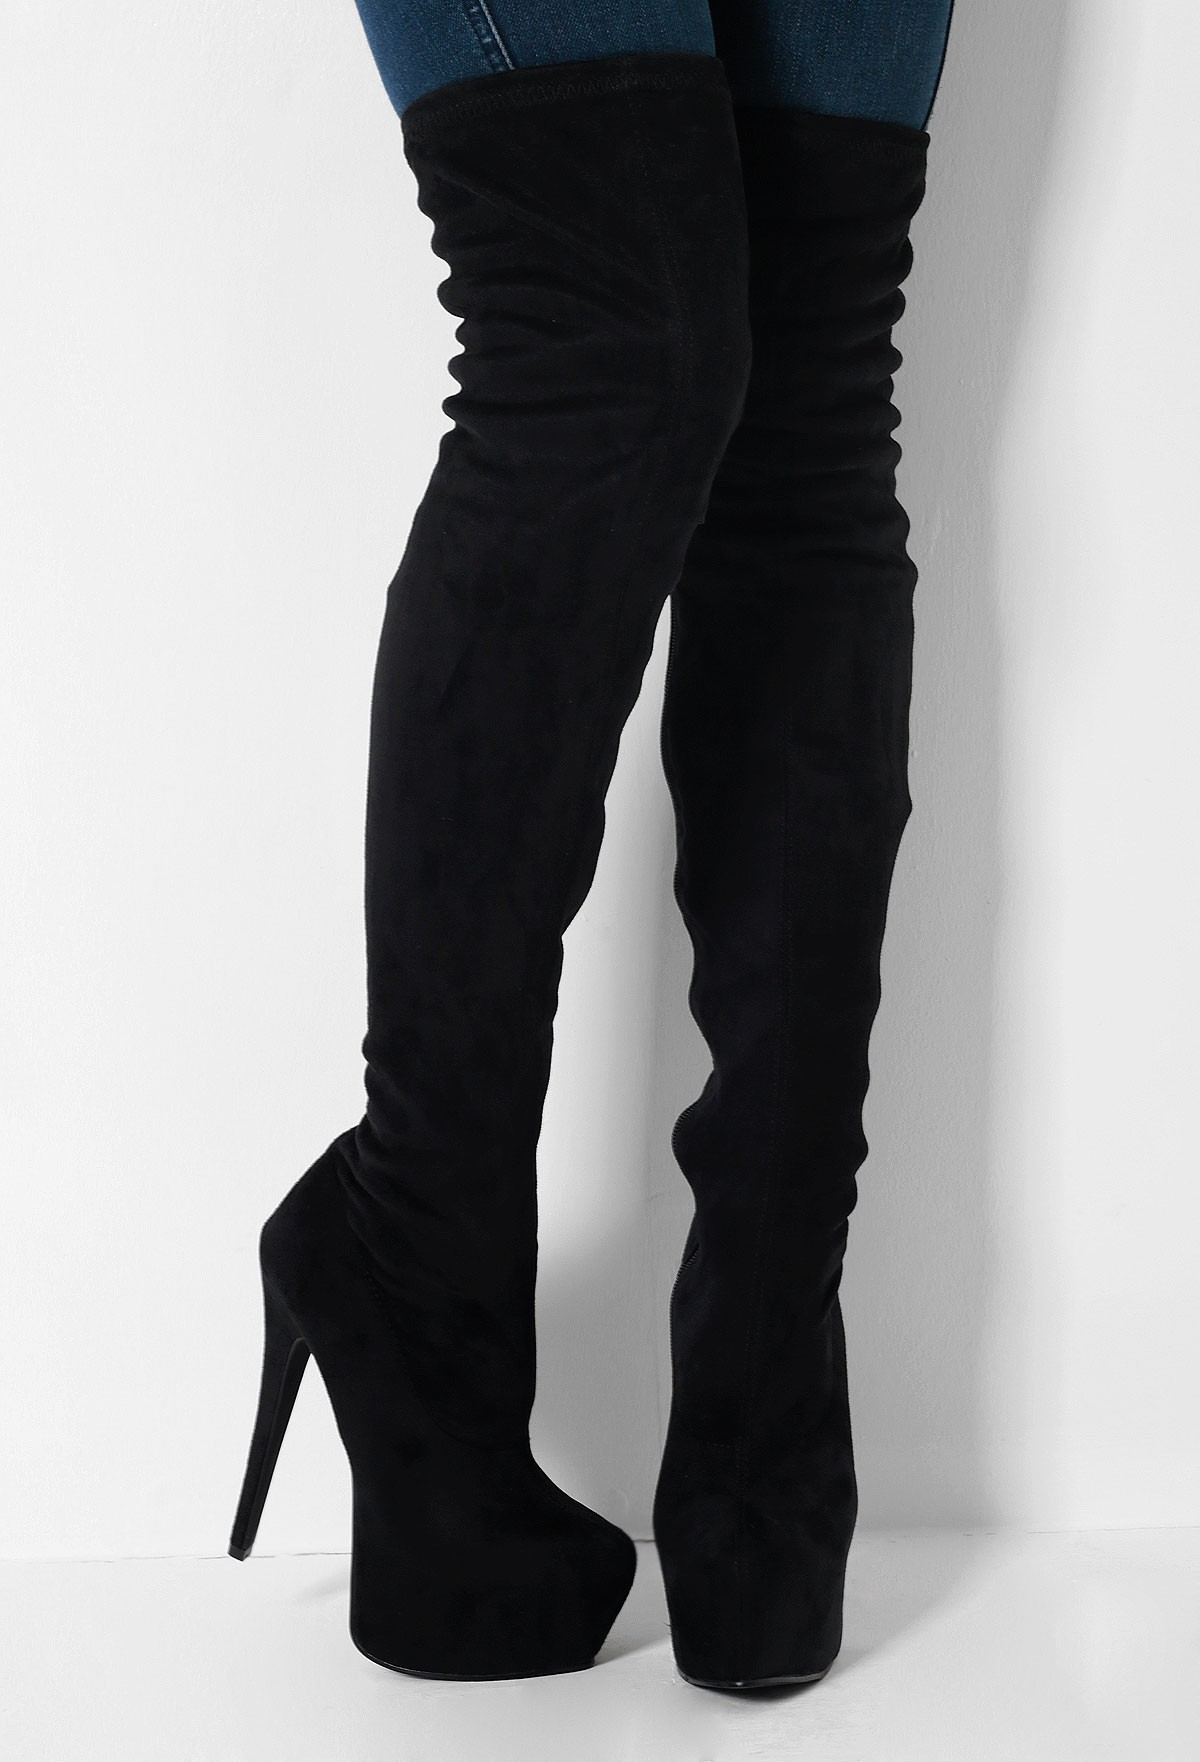 Thigh High Black Suede Boots kGZc9W6v